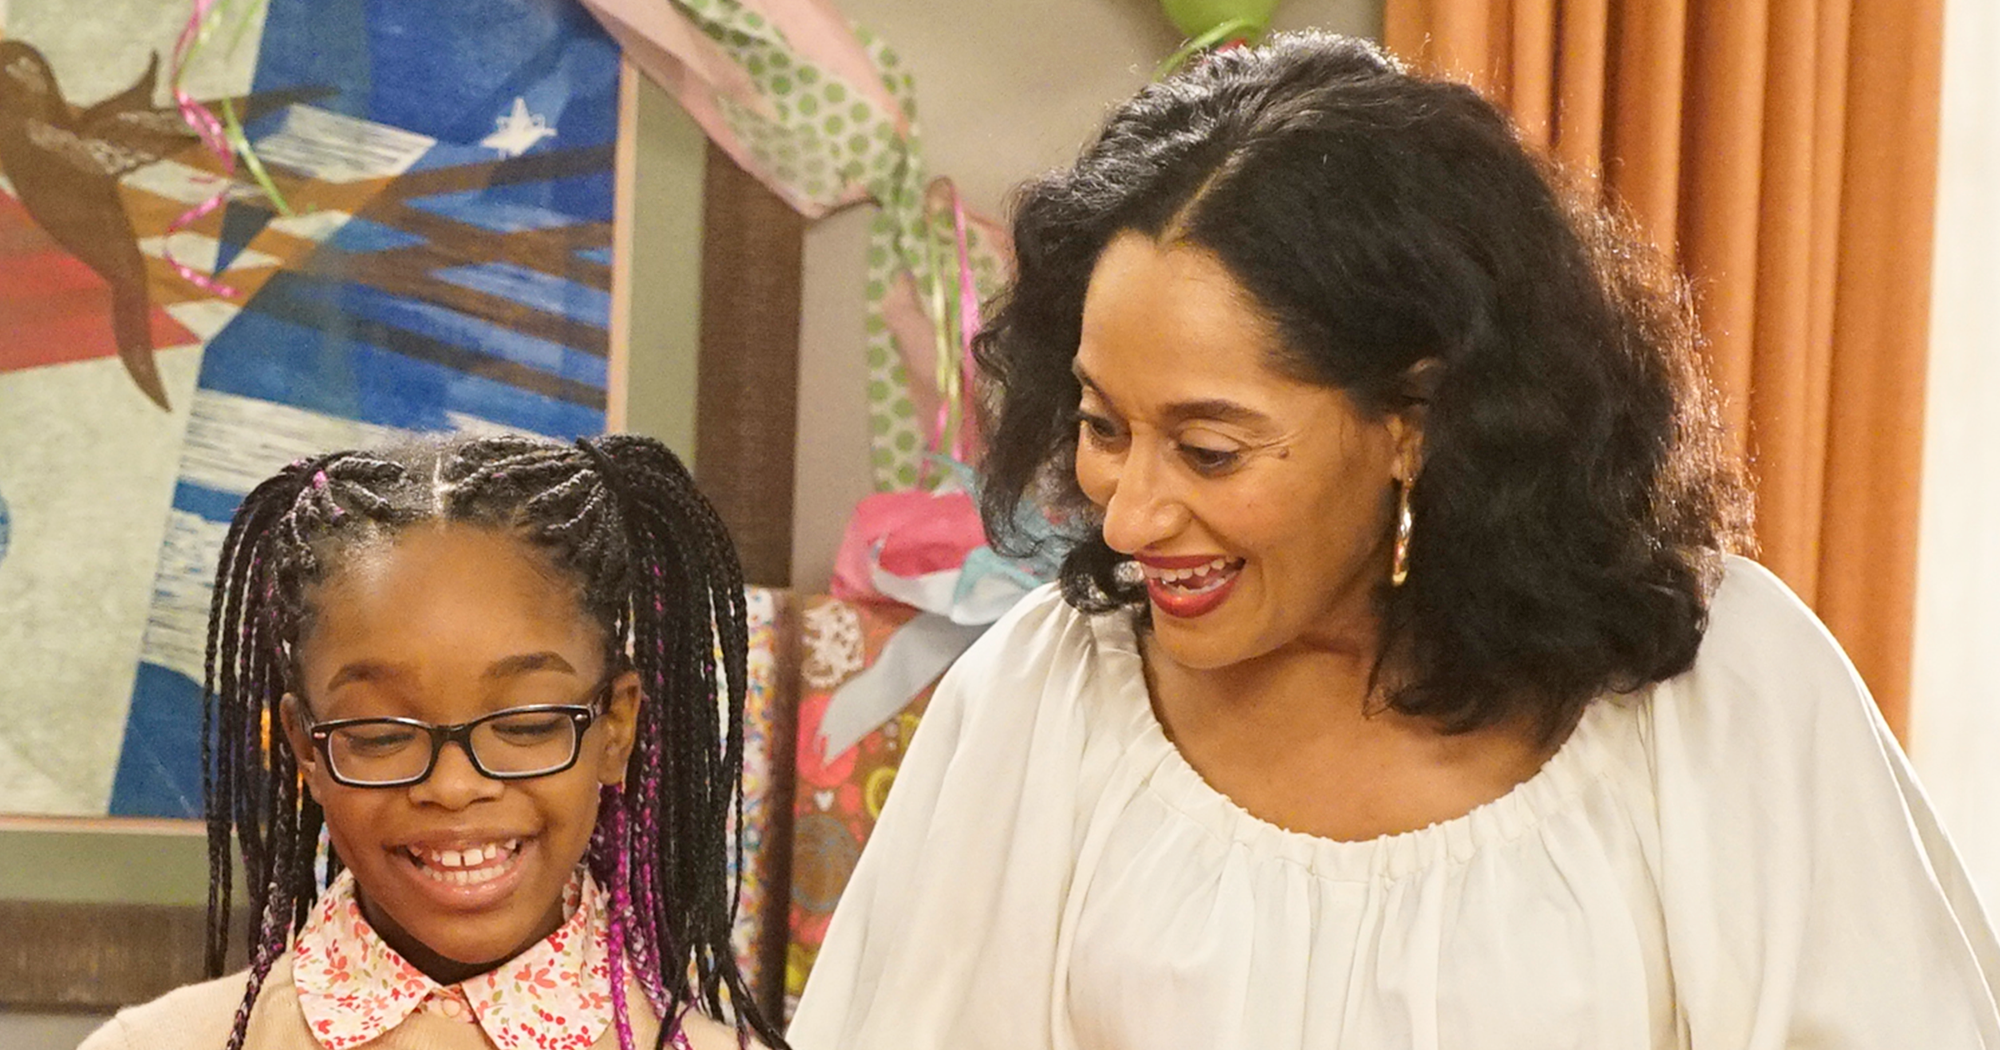 osw.zone Black-ish Just Explained Why Black Dolls Matter